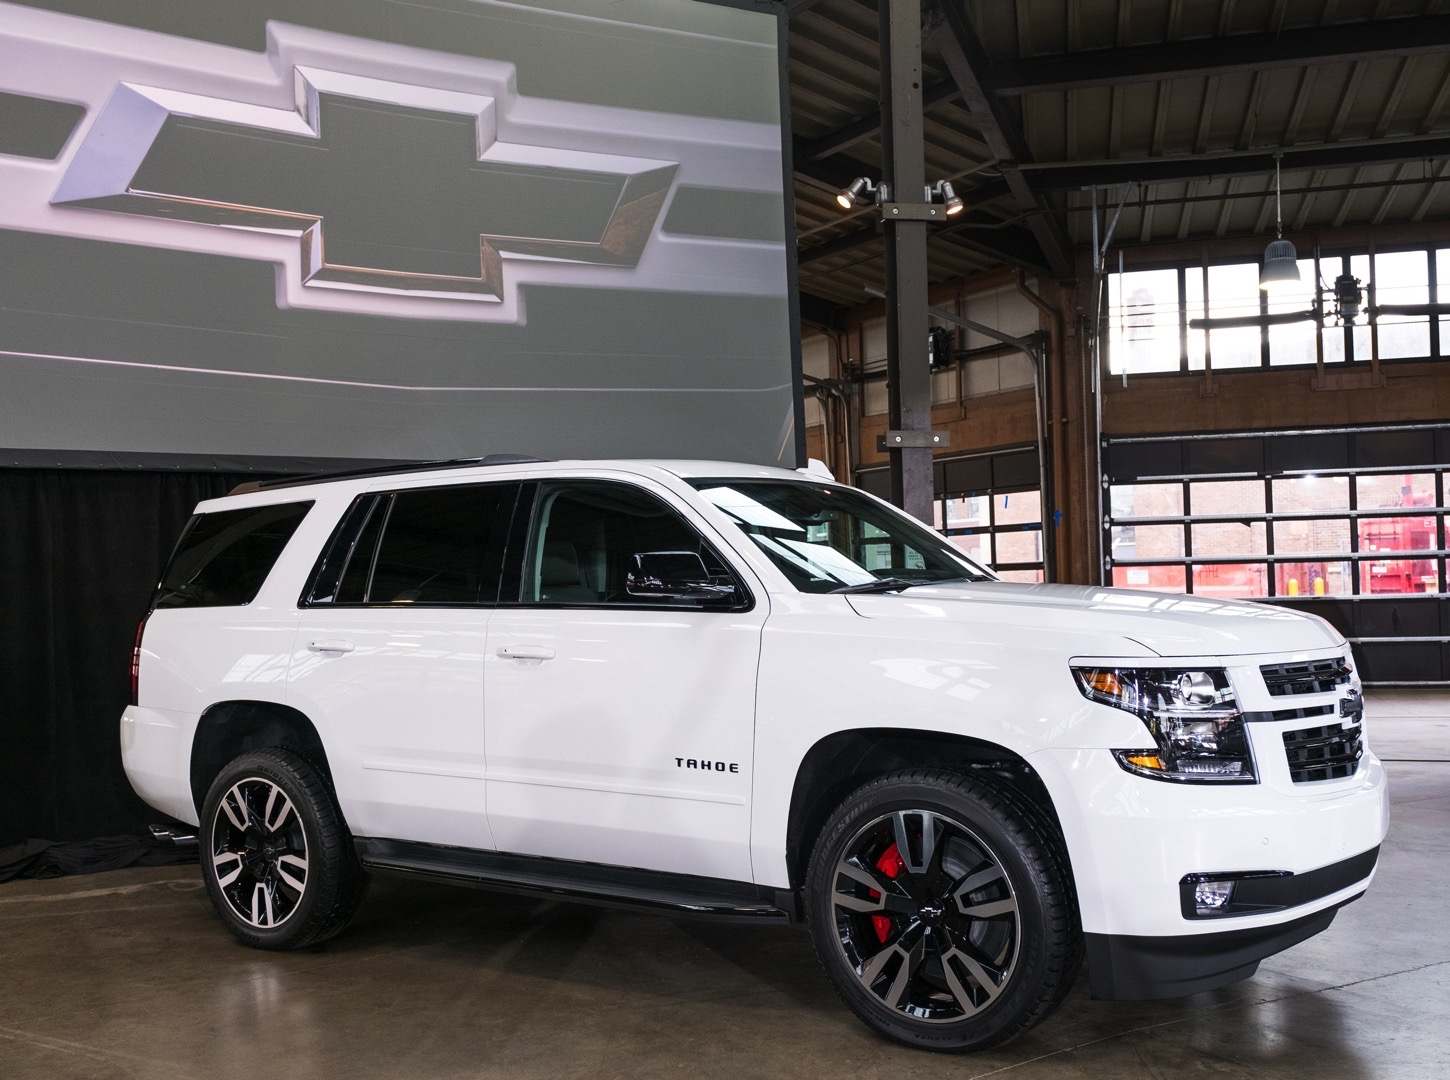 Tahoe Rst Is A Full Size Chevrolet Suv Packing Hp Autoevolution